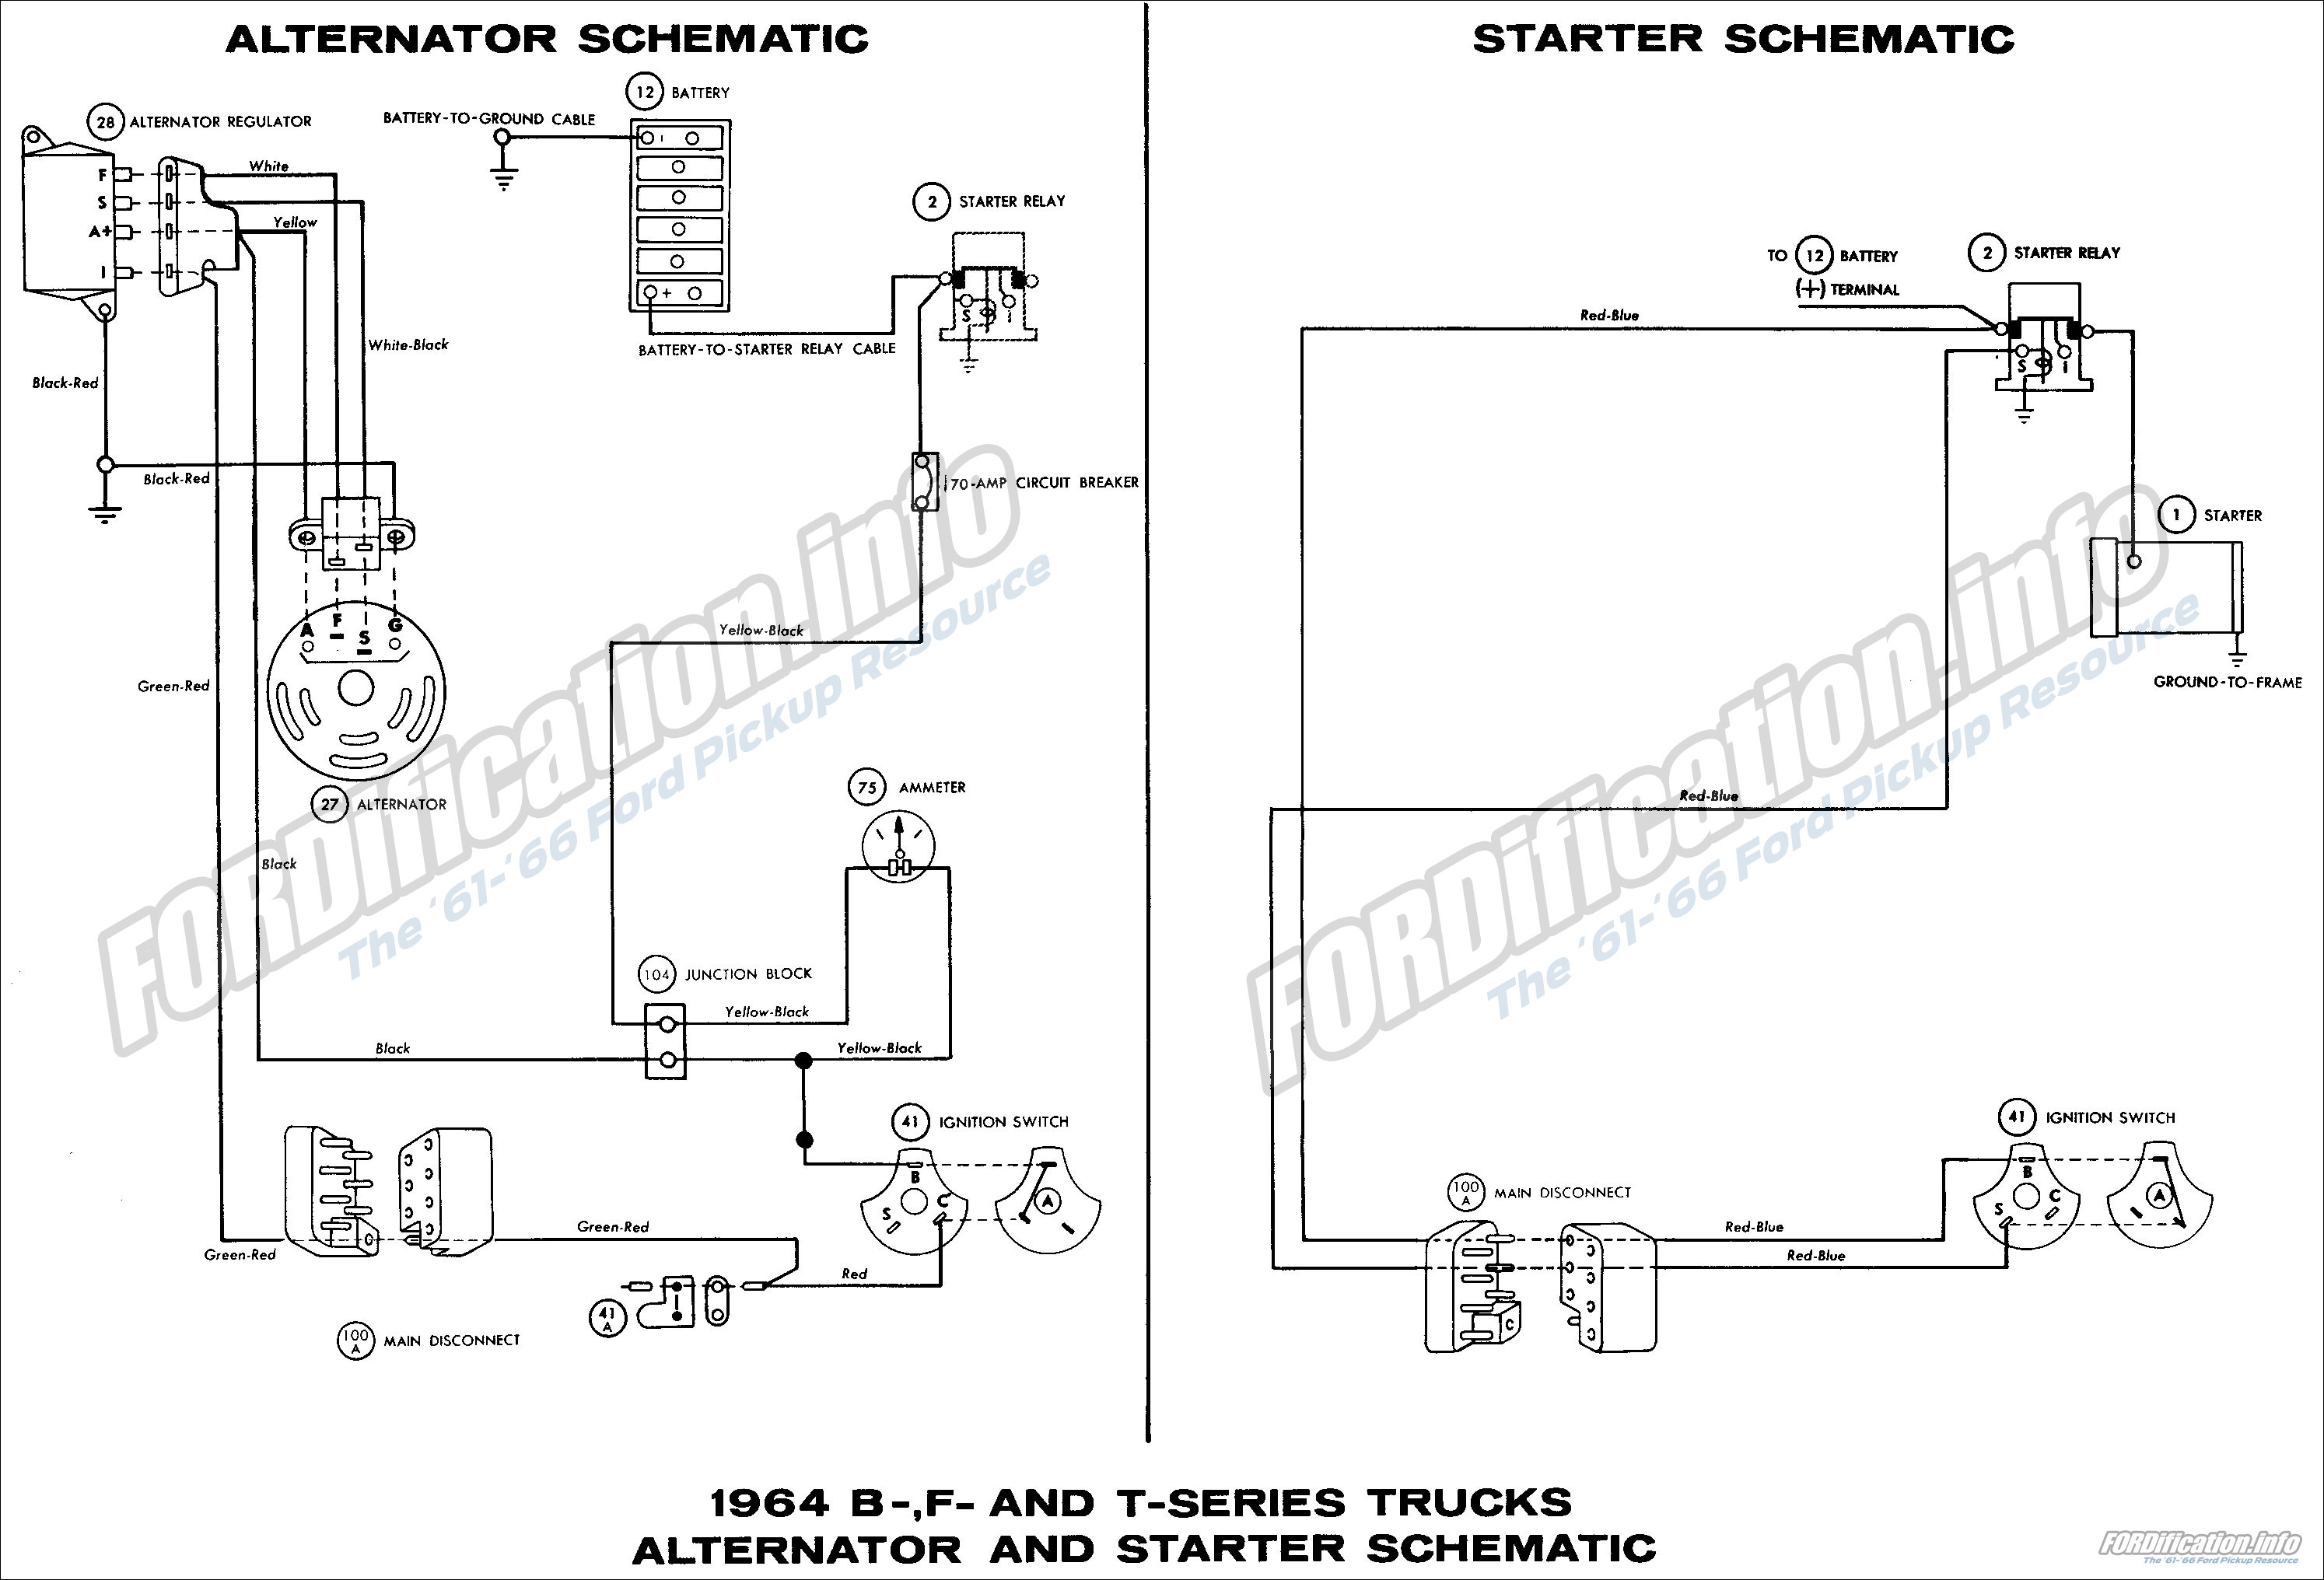 Truck Tail Light Wiring Diagram On 73 Ford F 250 Wiring Schematic